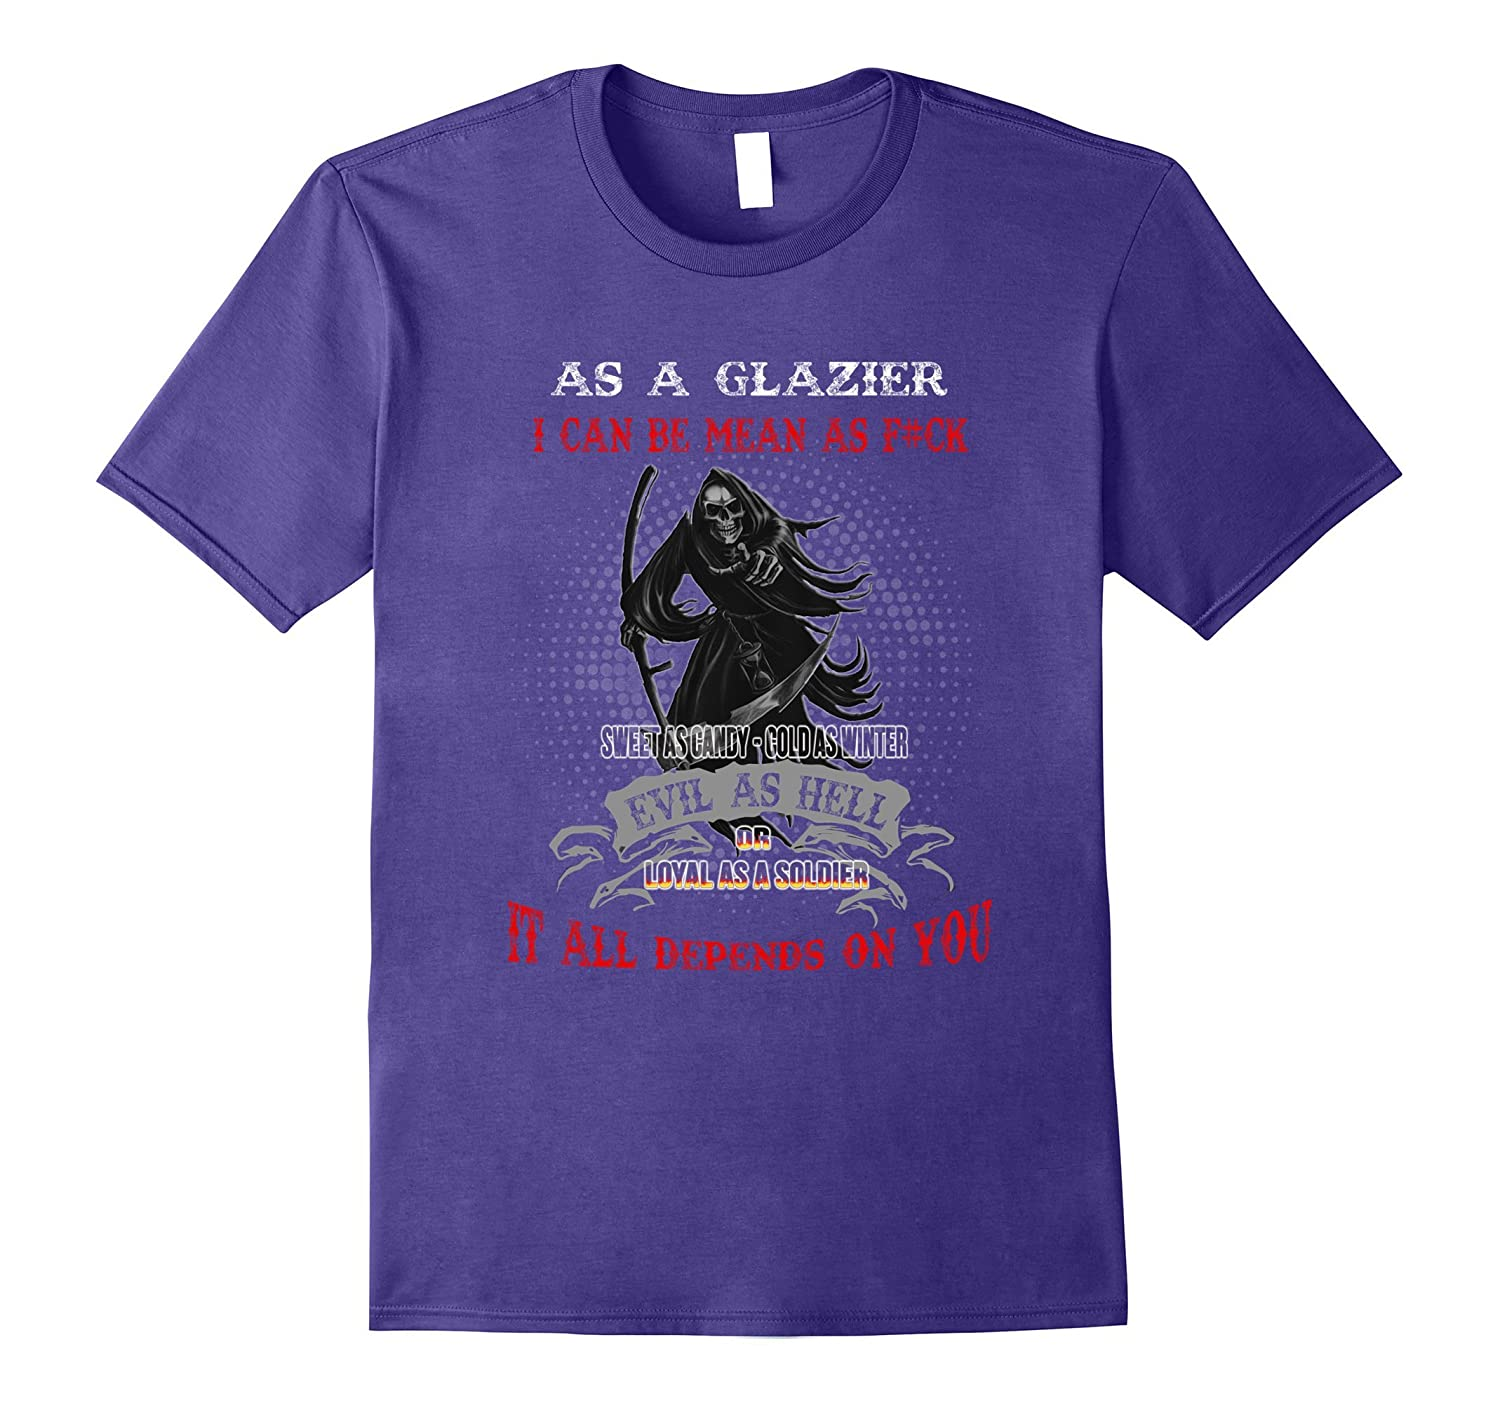 As a Glazier i mean depend on you t shirt-PL